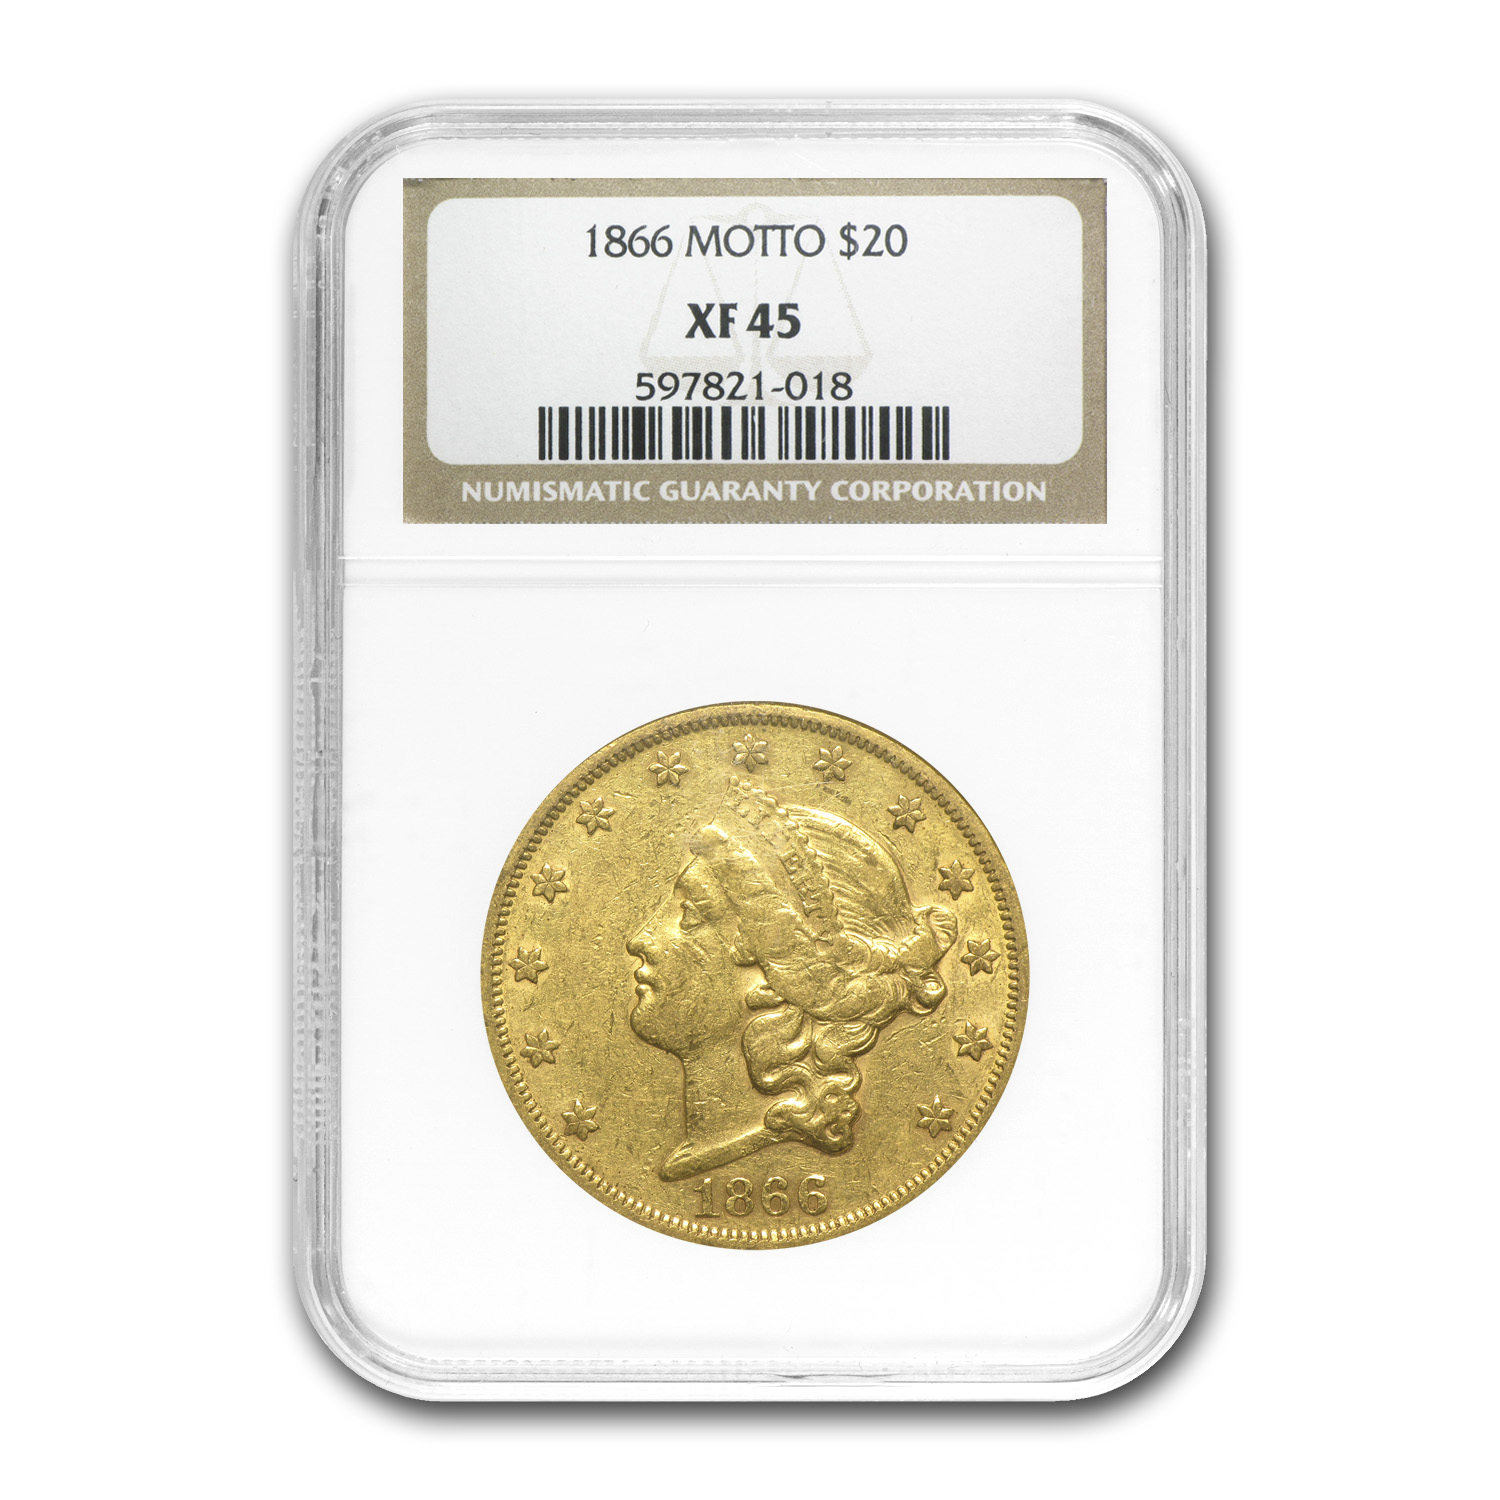 1866 $20 Gold Liberty Double Eagle (Motto) - XF-45 NGC